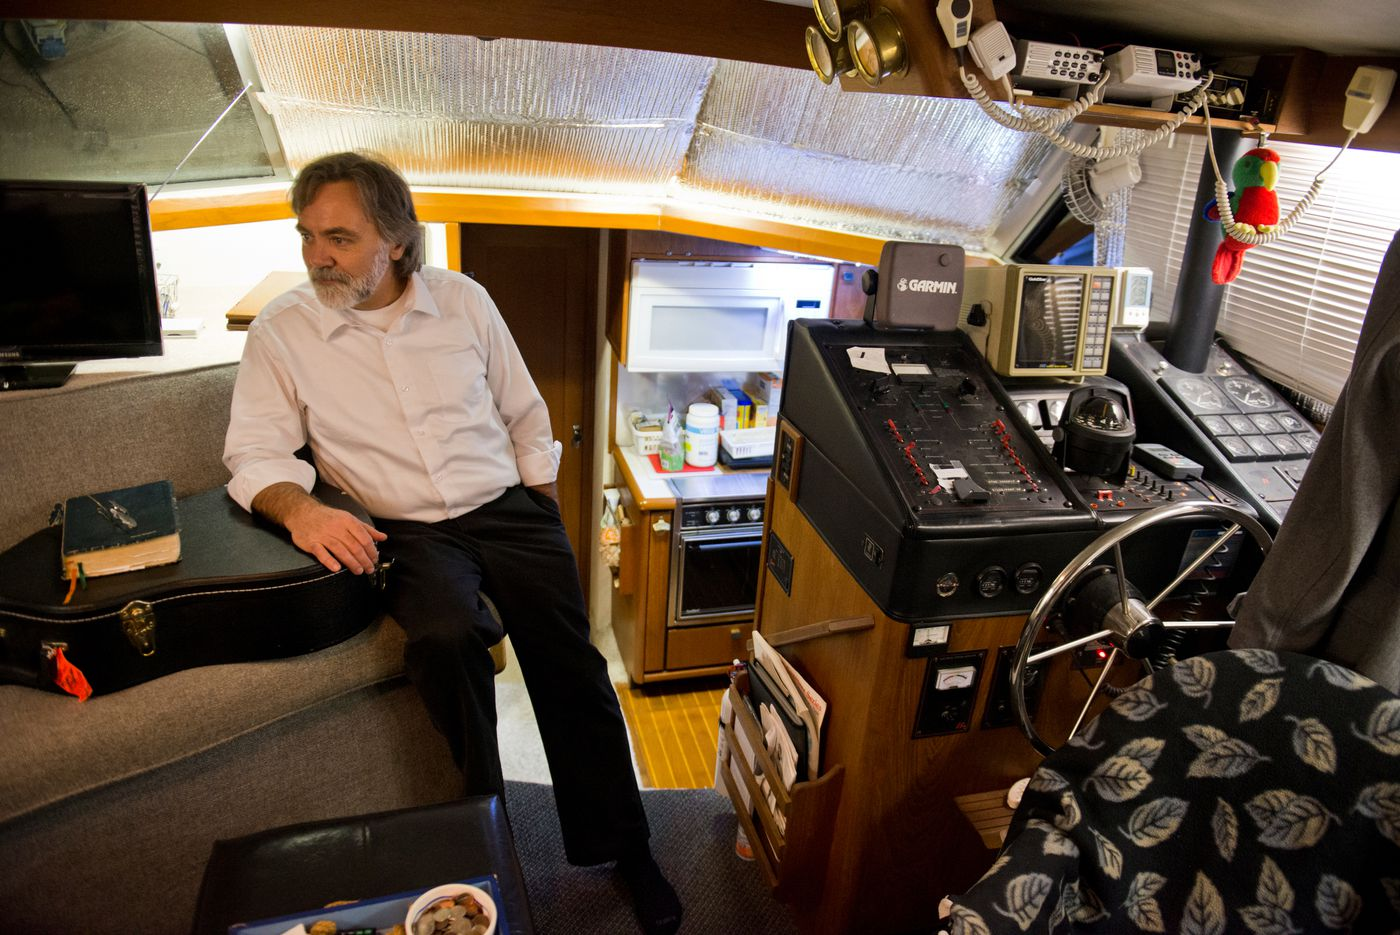 Randy Hoffbeck, commissioner of the Alaska Department of Revenue, who lives in Eagle River when he's not in Juneau, lives on his boat during the legislative session. He said he looked for housing in Juneau for months before buying the boat. (Marc Lester / Alaska Dispatch News)